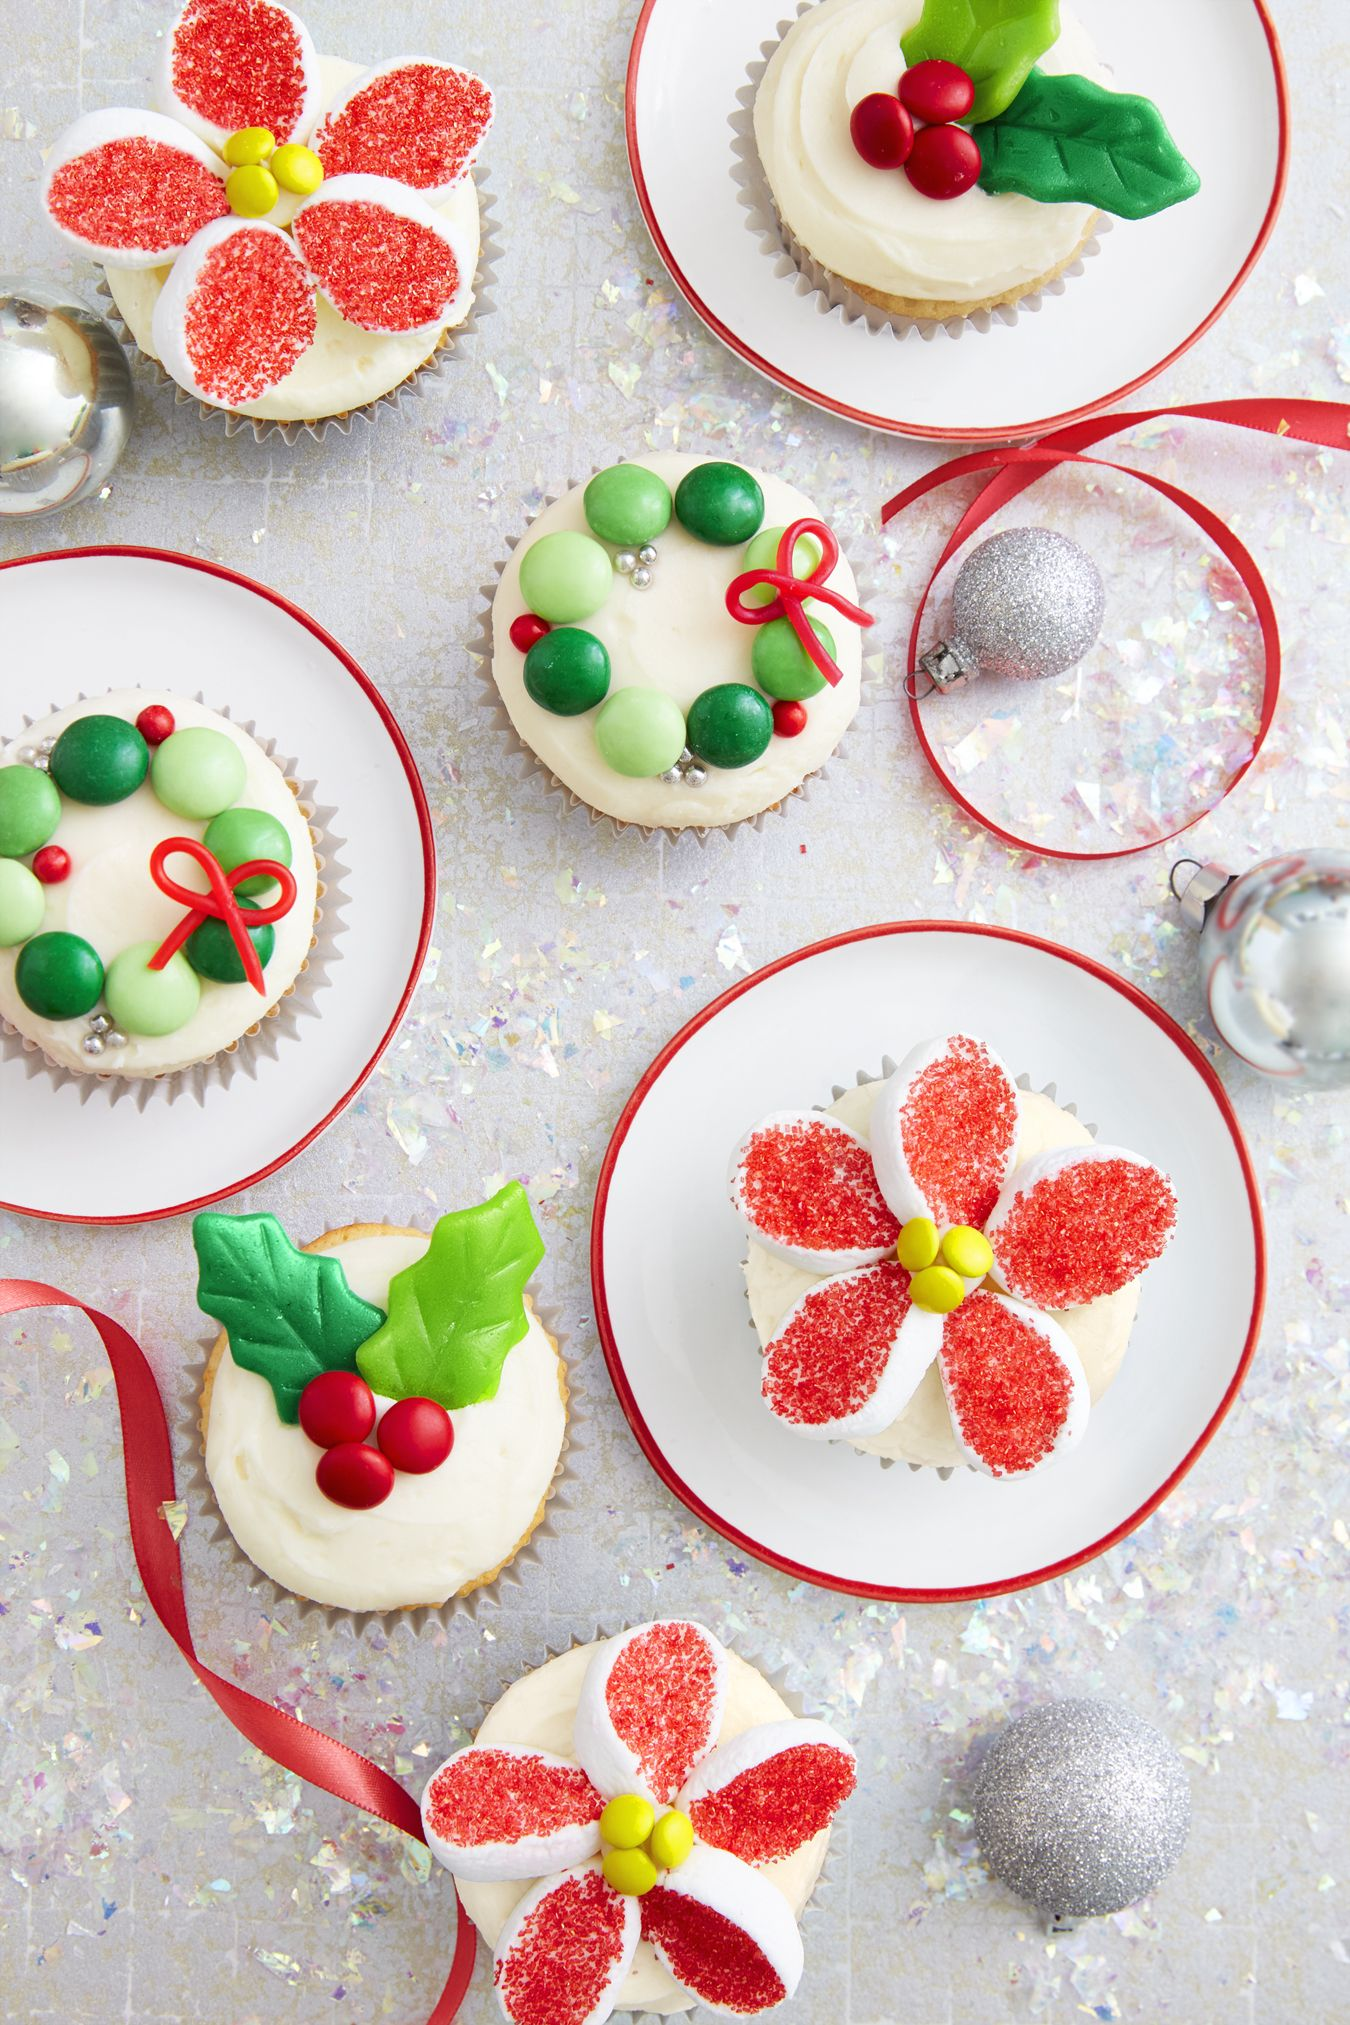 60 easy christmas desserts best recipes and ideas for christmas dessert - Christmas Party Desserts